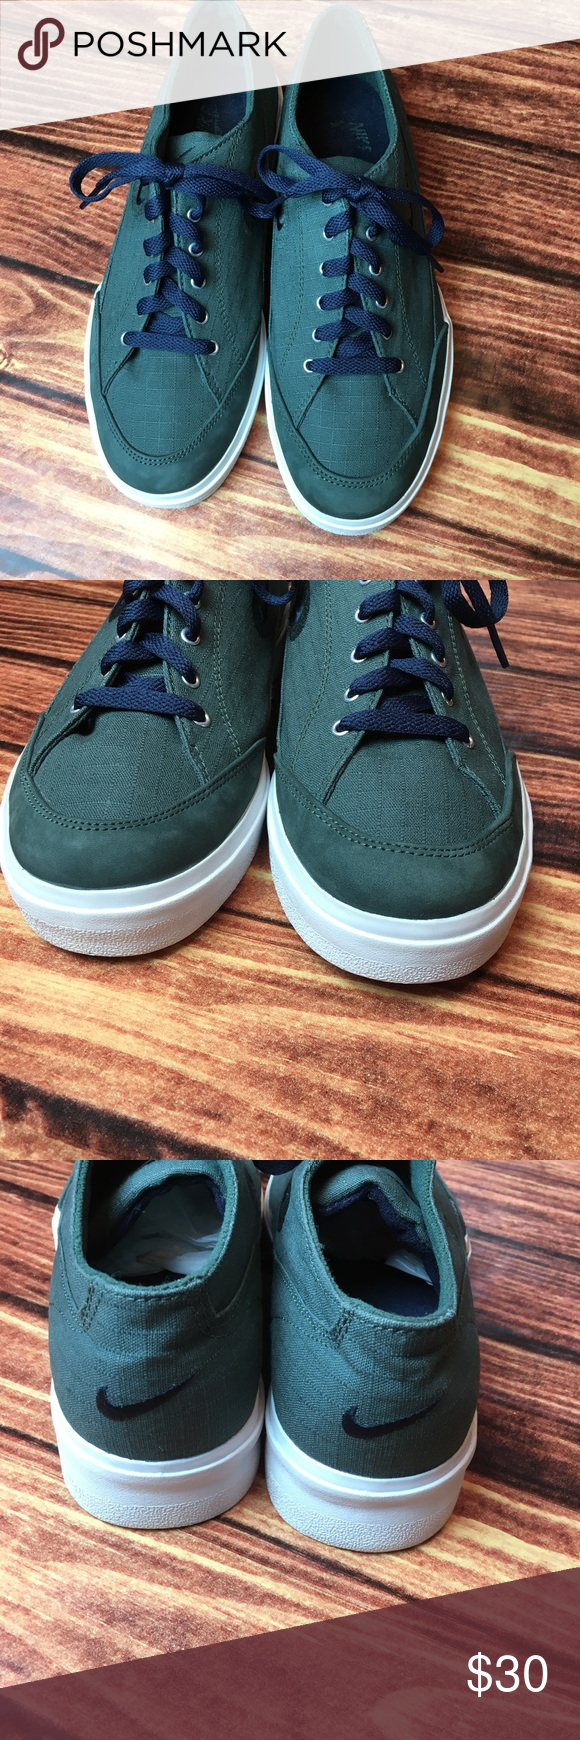 {Nike} green canvas sneakers Sz 9.5 Green canvas {Nike} sneakers with blue swoosh & new blue laces. Size 9.5 great condition! Nike Shoes Sneakers